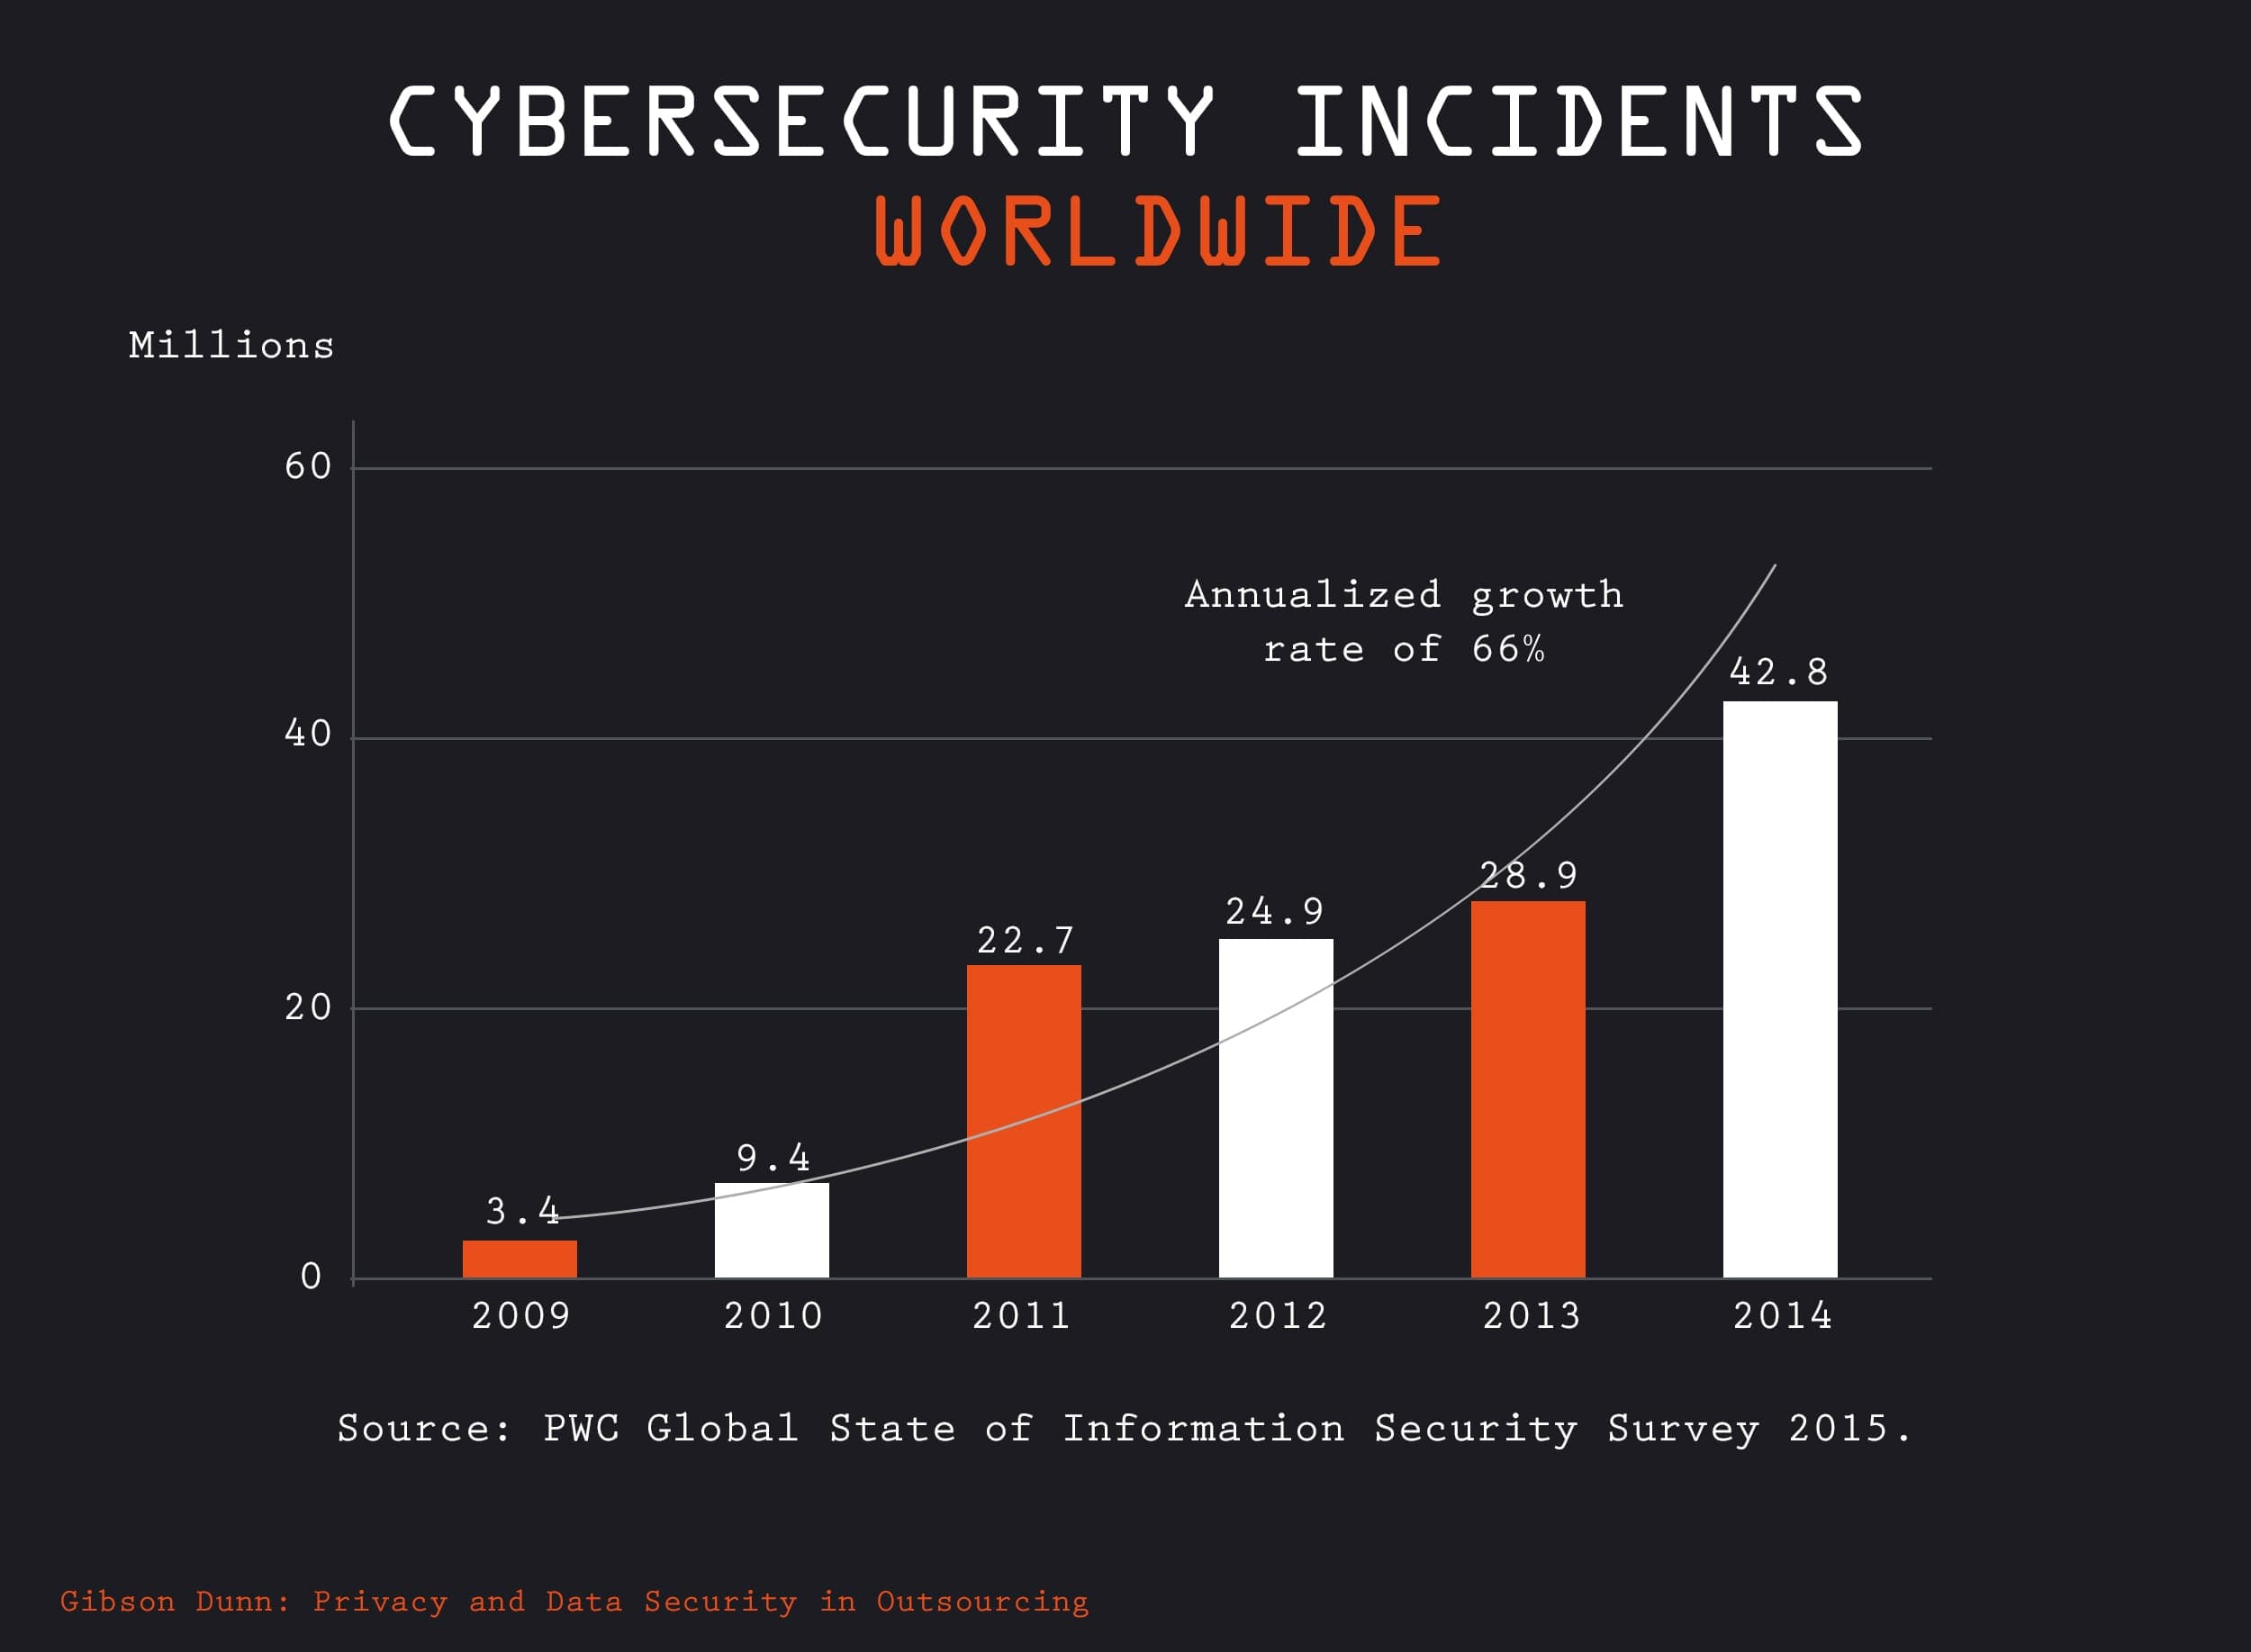 cybersecurity incidents worldwide